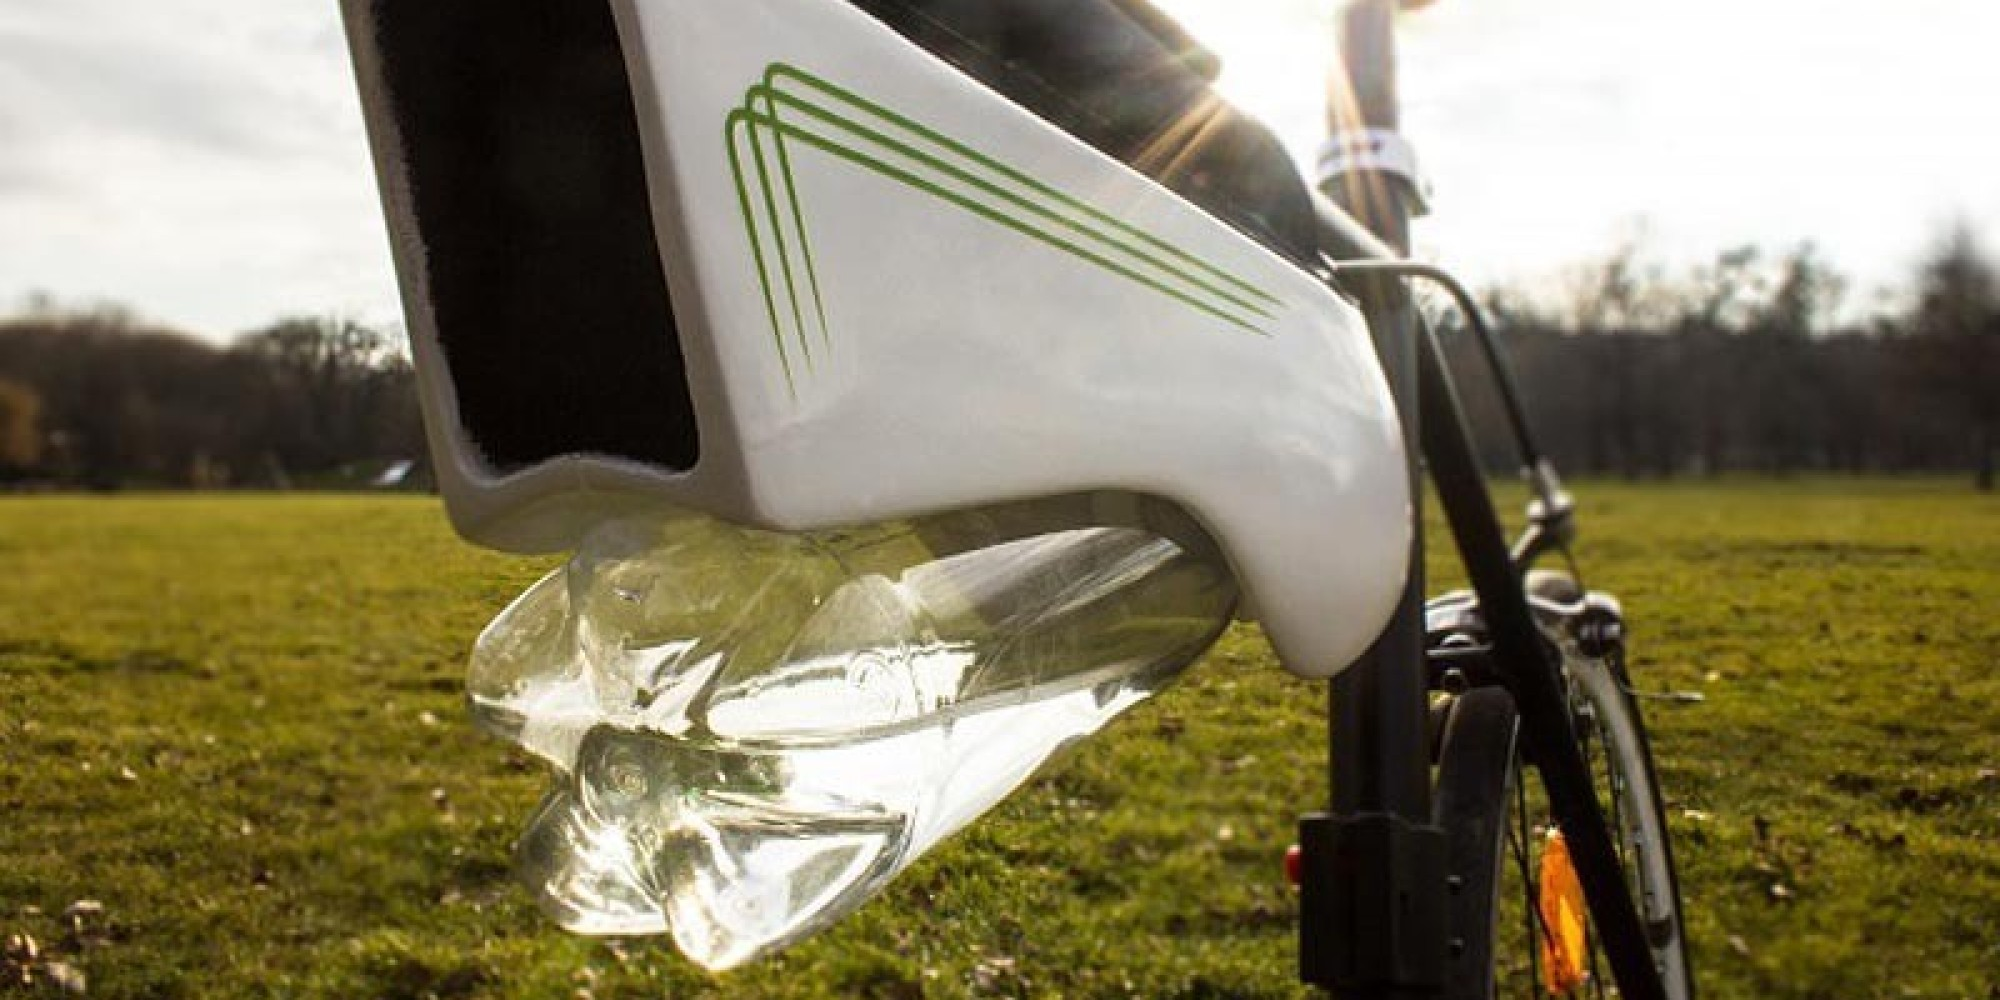 Fontus Solar Powered Device That Harvests Water From Air The